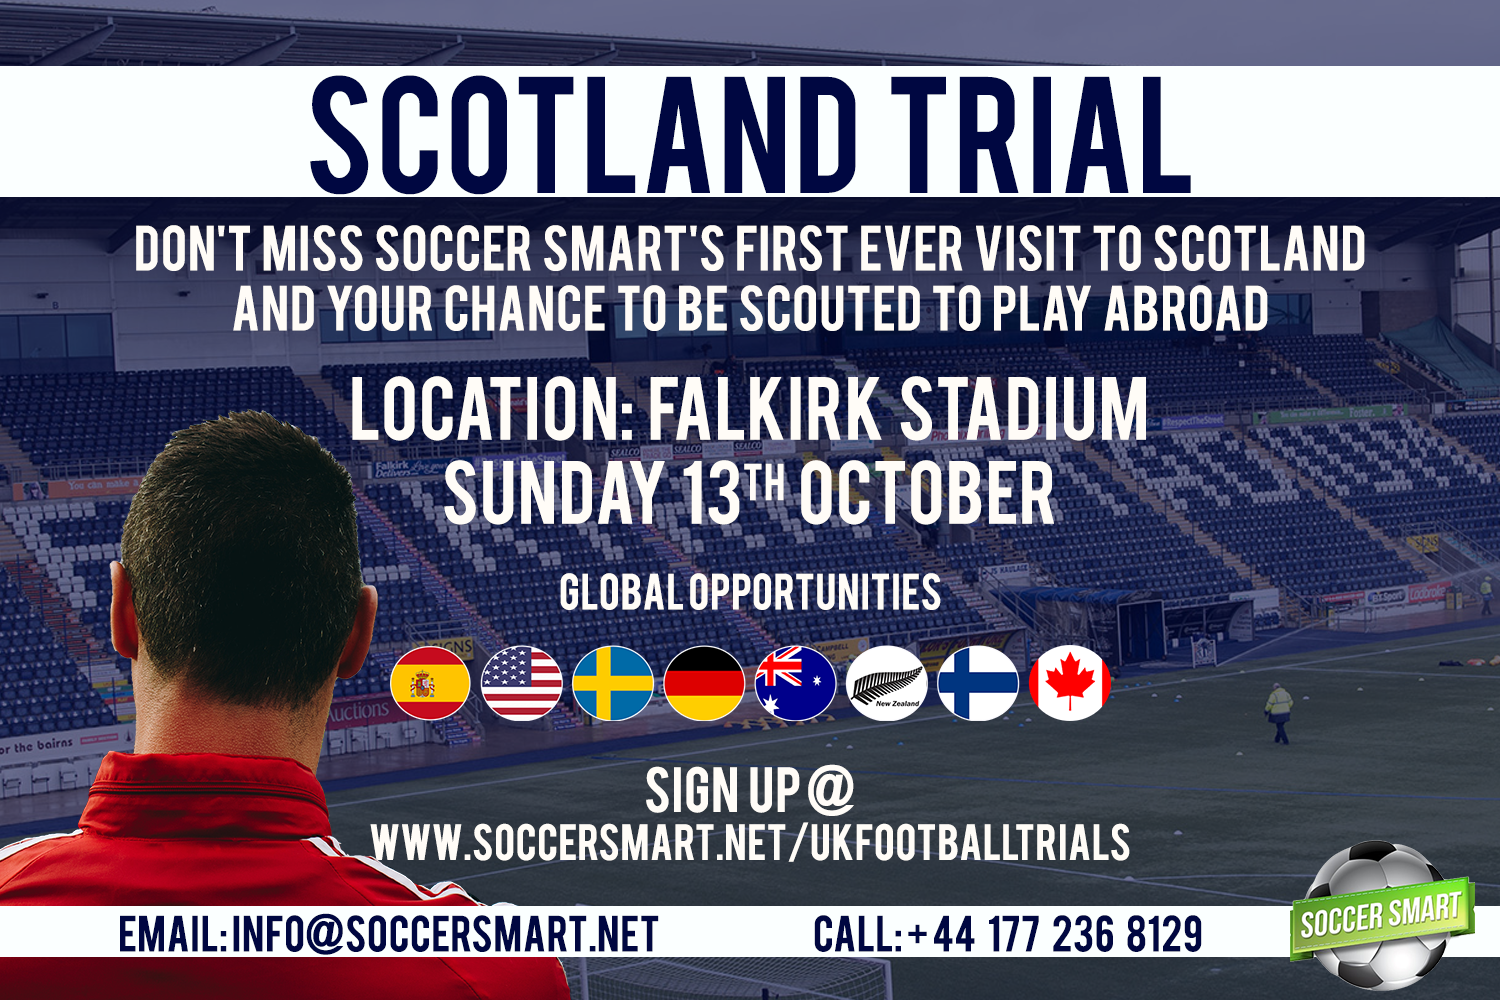 Don't miss the chance to play at the impressive Falkirk Stadium!